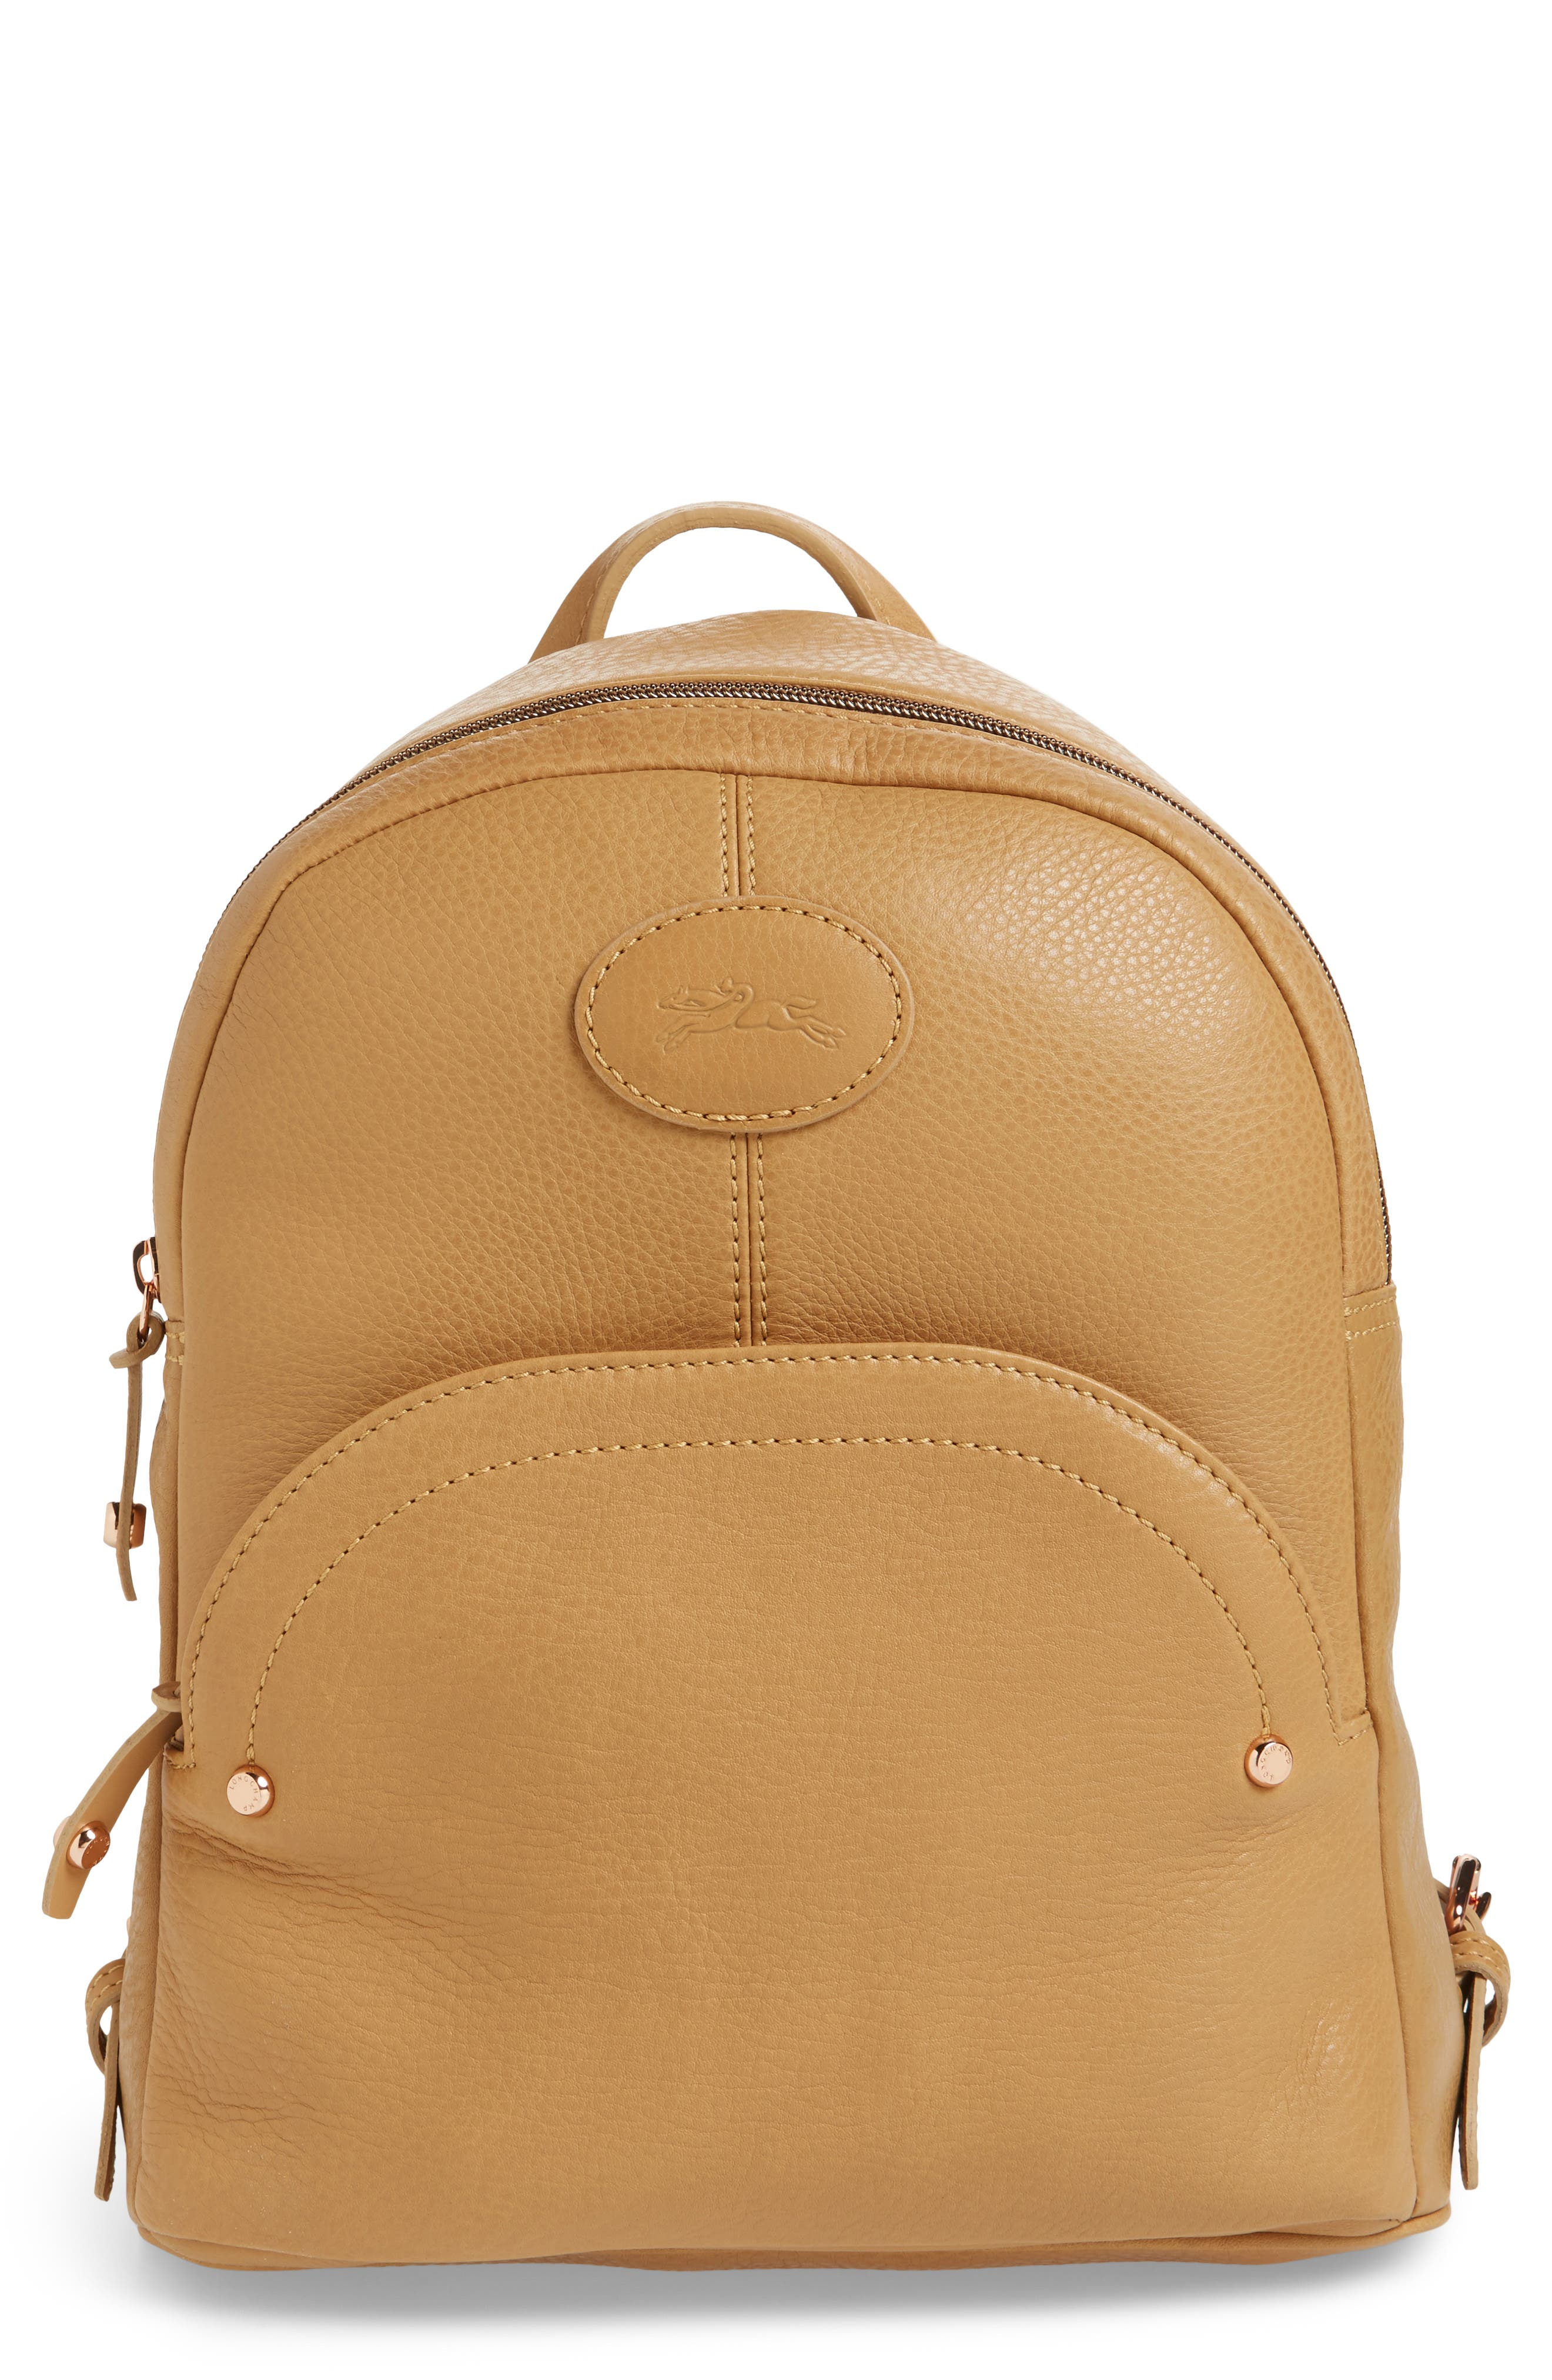 Alternate Image 1 Selected - Longchamp Mystery Leather Backpack